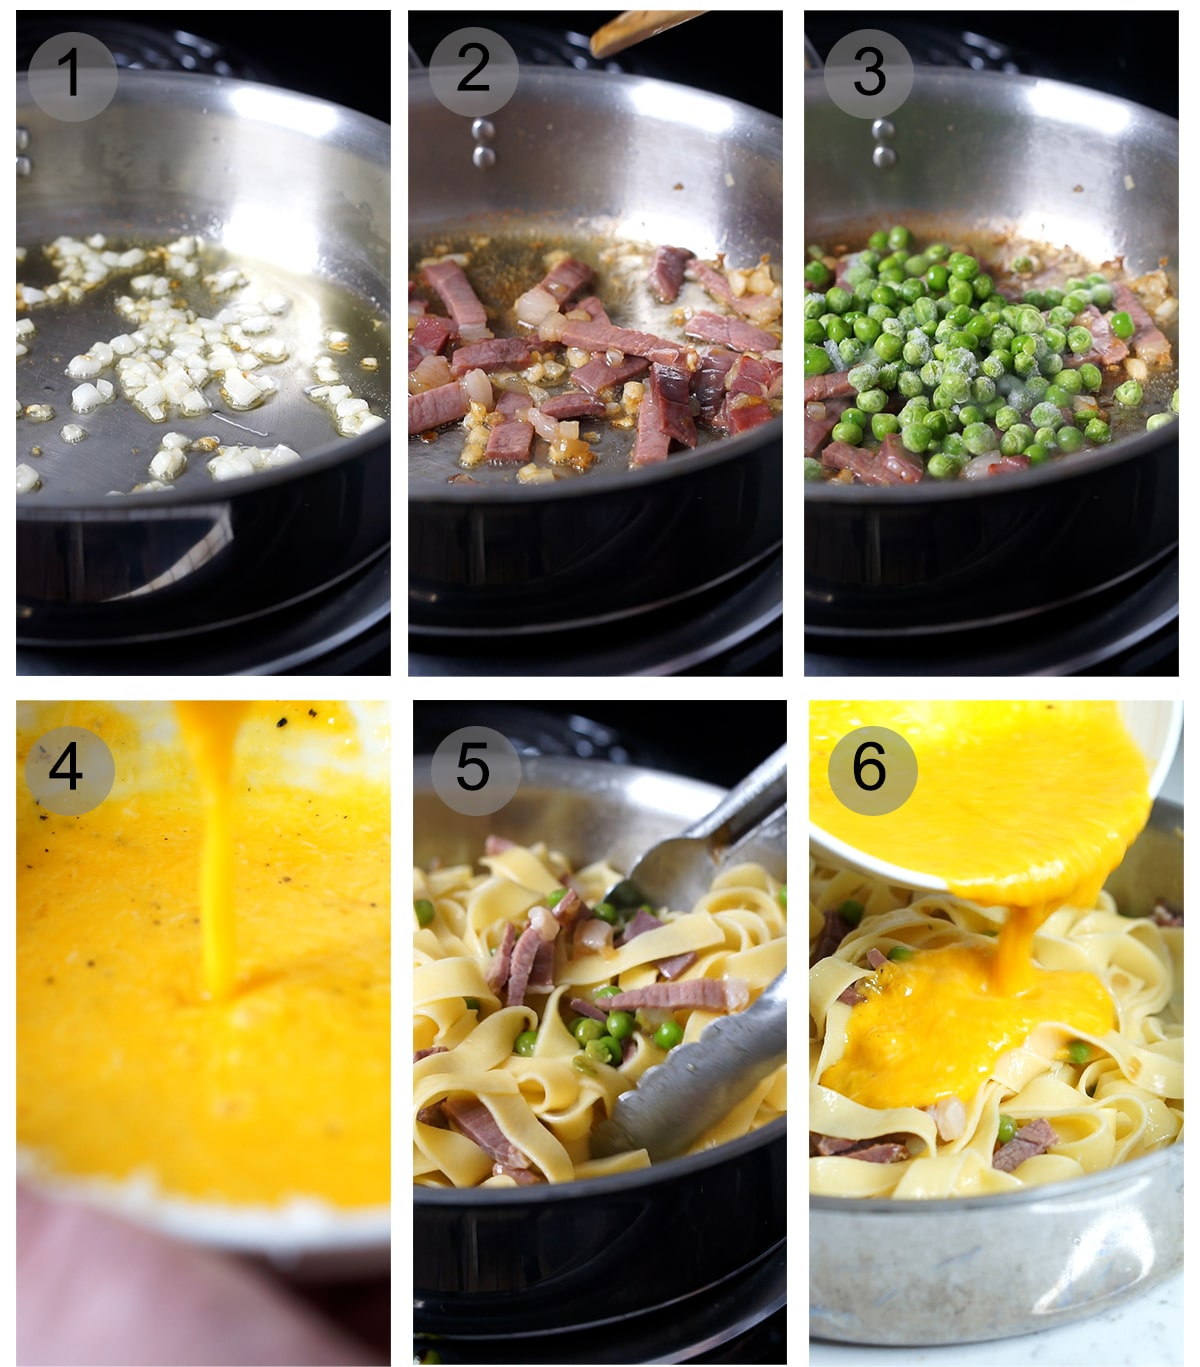 Step by step photos on how to make papalina pasta (#1-6)